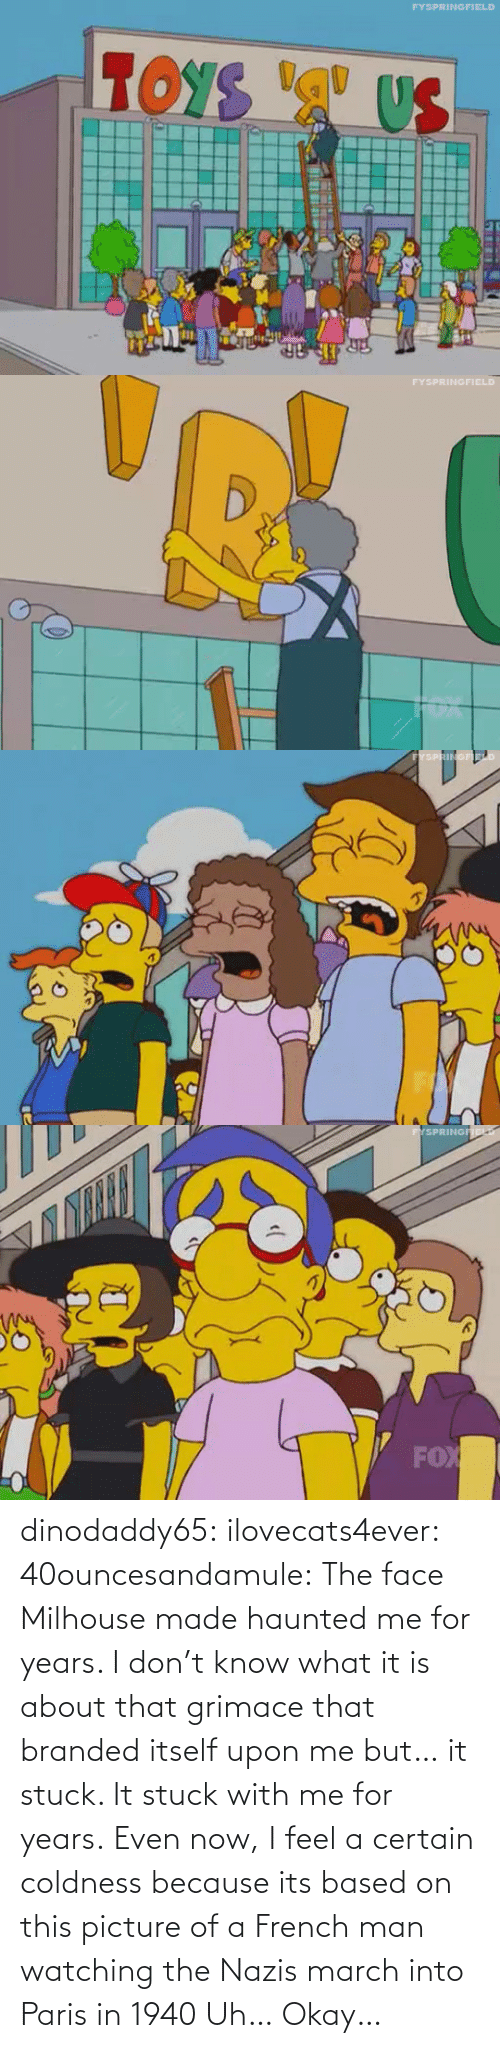 watching: dinodaddy65: ilovecats4ever:  40ouncesandamule:  The face Milhouse made haunted me for years. I don't know what it is about that grimace that branded itself upon me but… it stuck. It stuck with me for years. Even now, I feel a certain coldness  because its based on this picture of a French man watching the Nazis march into Paris in 1940    Uh… Okay…